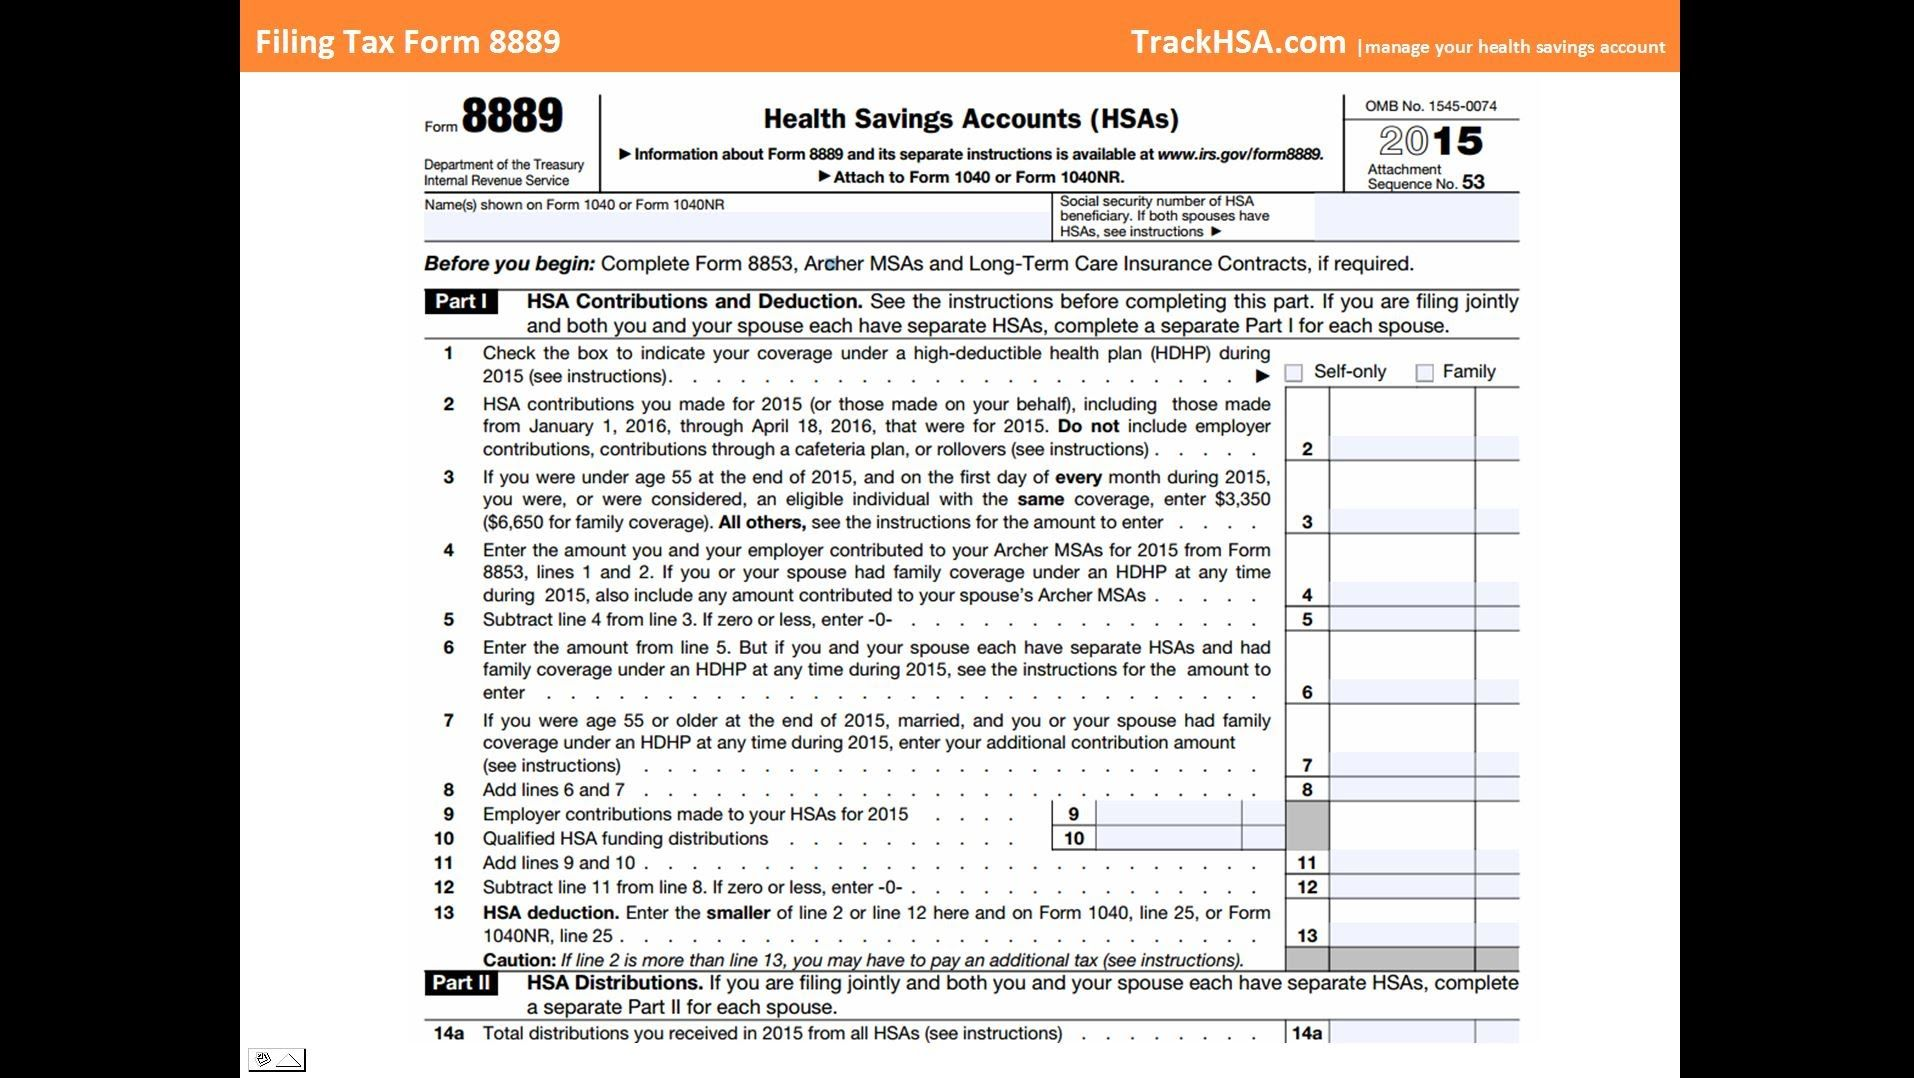 How To File Hsa Tax Form 8889 Tax Forms Filing Taxes Health